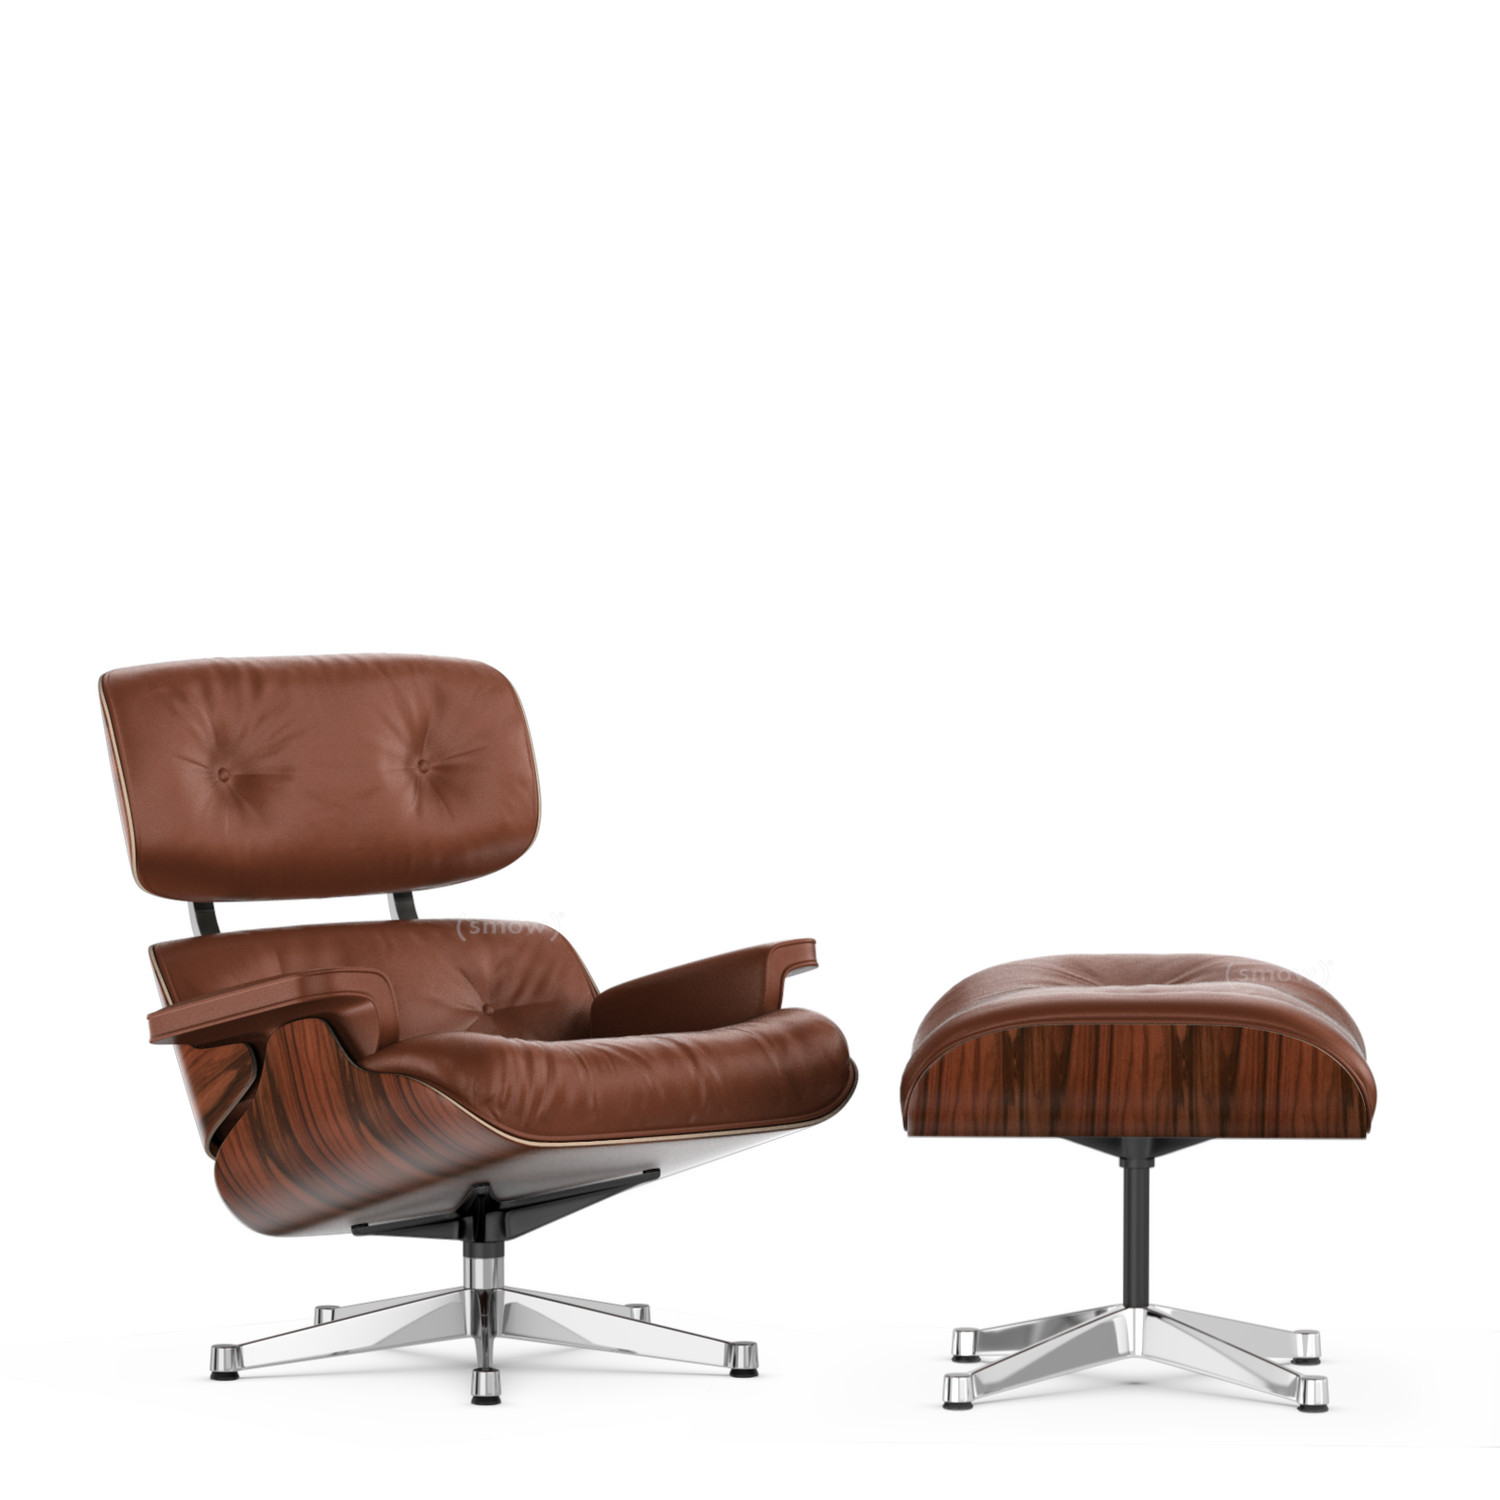 Eames Lounge Chair.Vitra Lounge Chair Ottoman Beauty Versions Santos Palisander Brandy 89 Cm Aluminium Chrome Plated